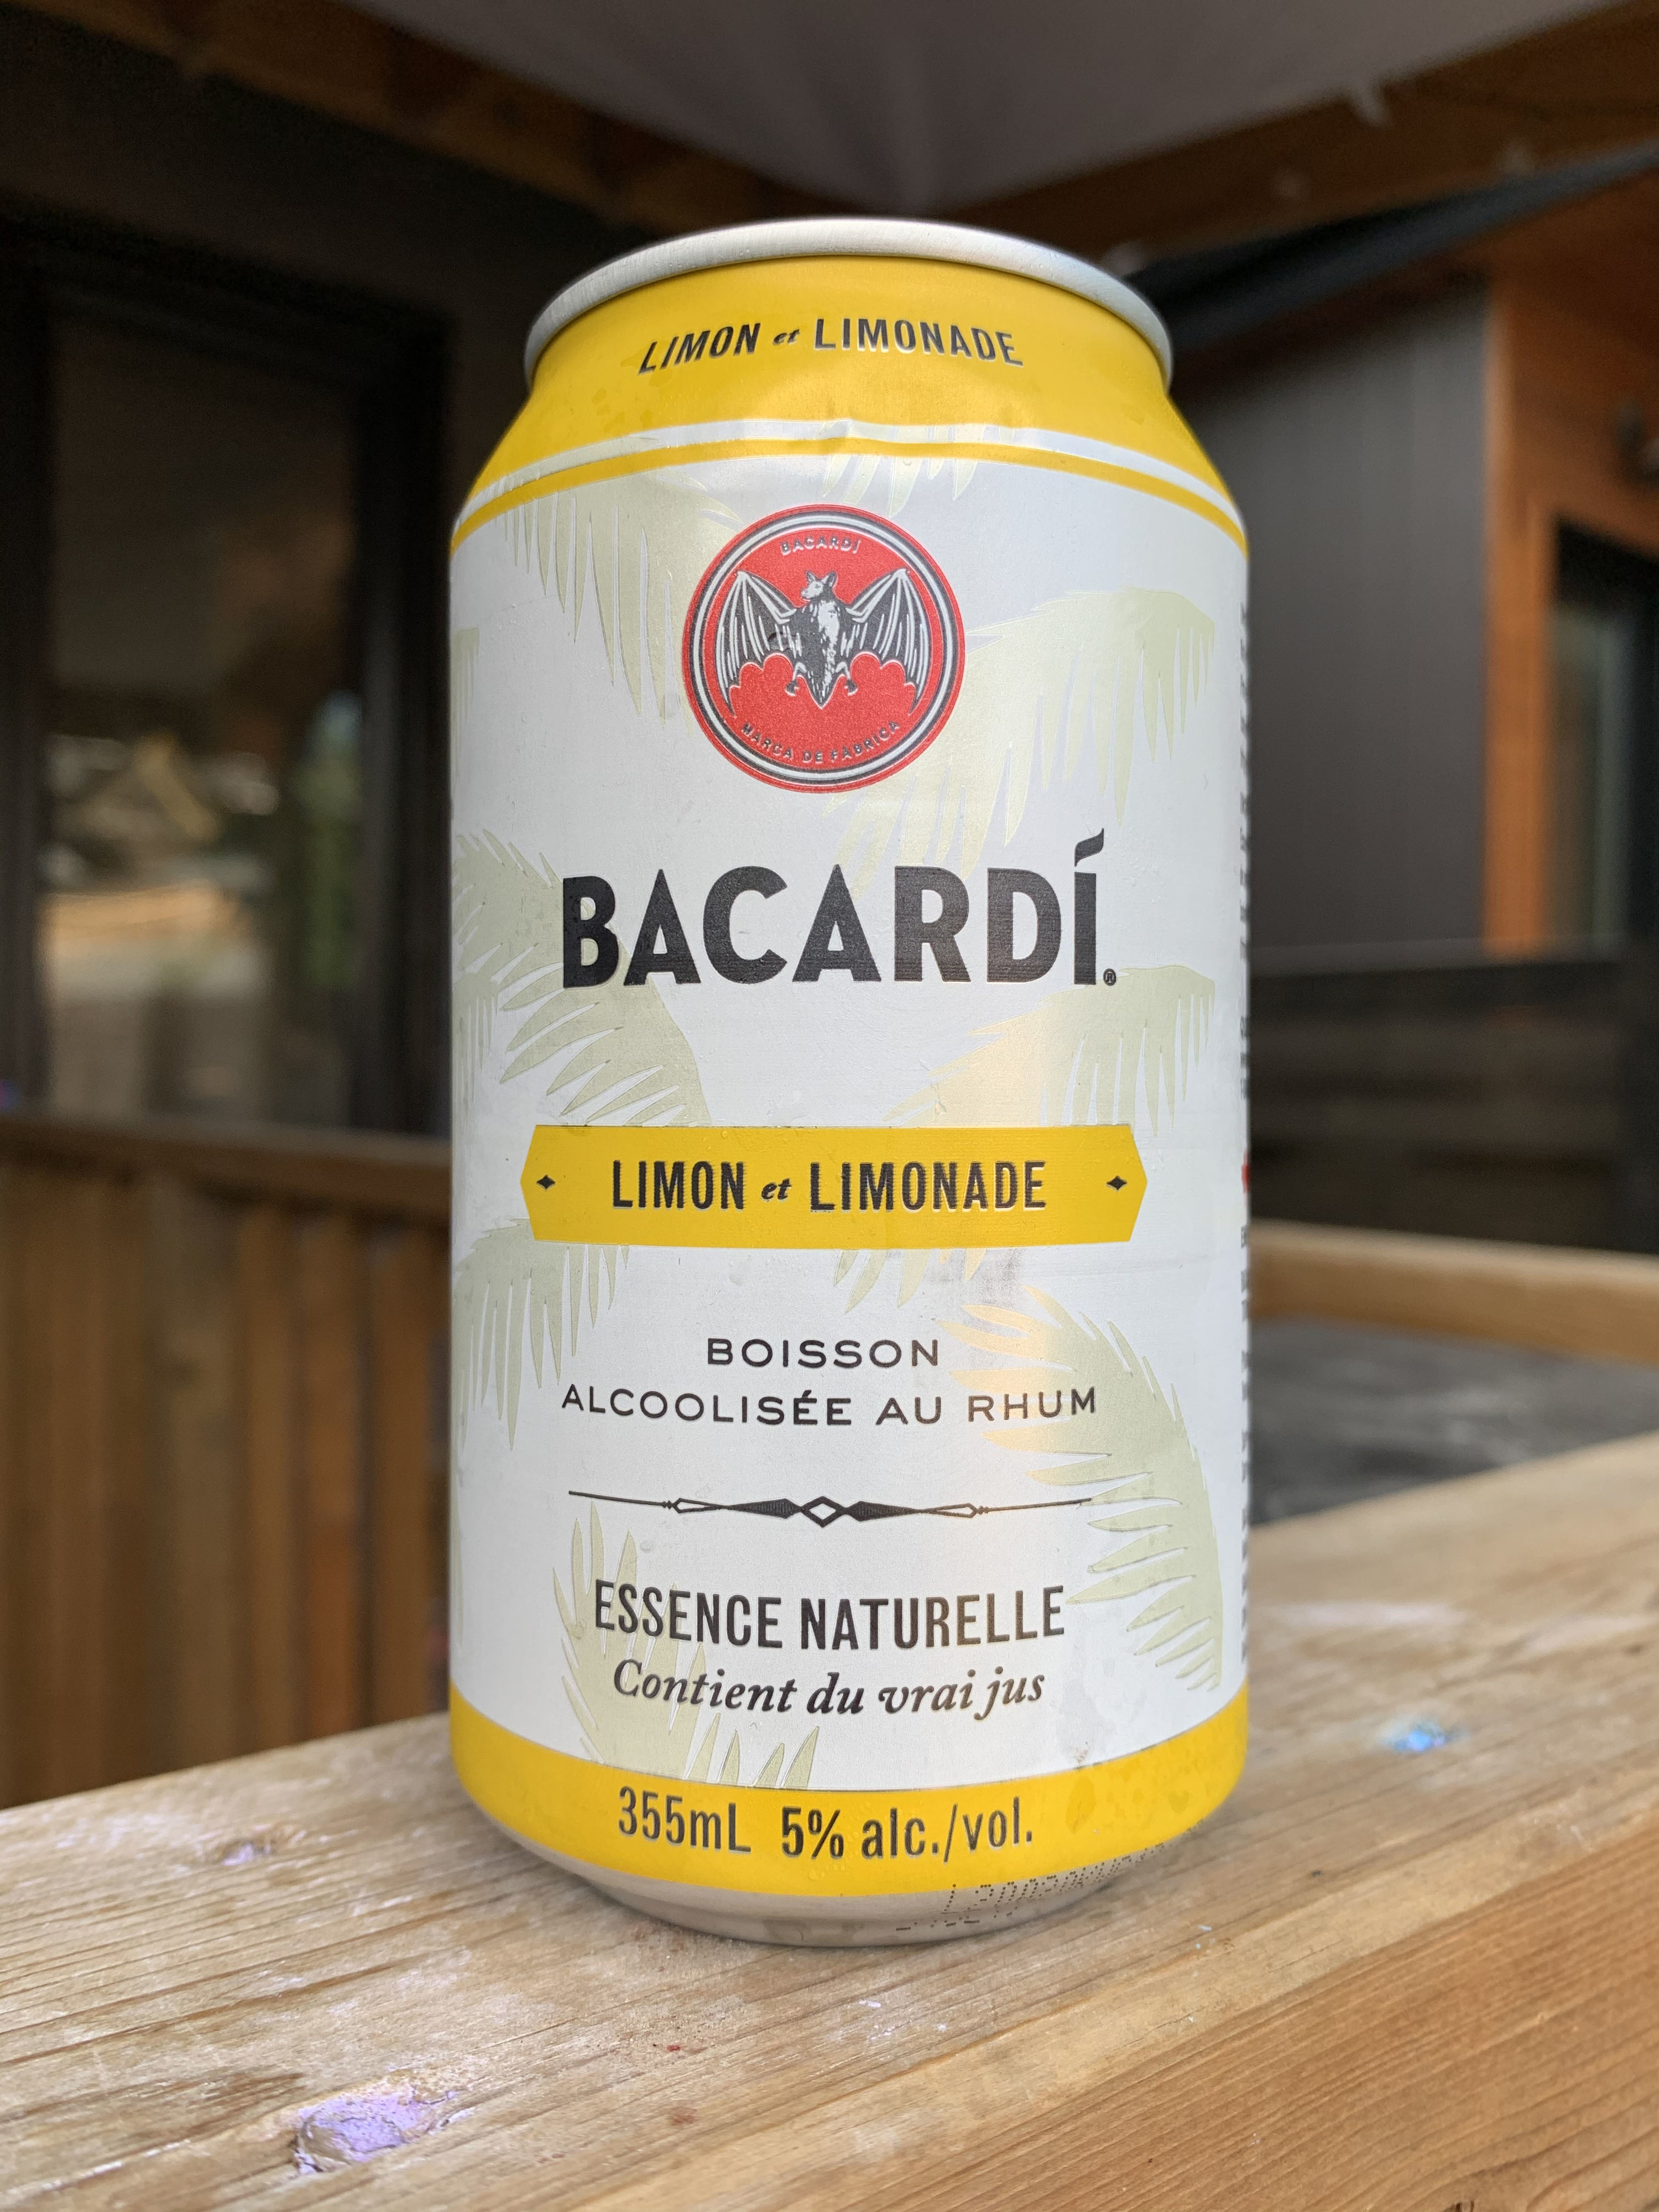 A small can of Bacardi with yellow bands around the can and palm trees in the background.